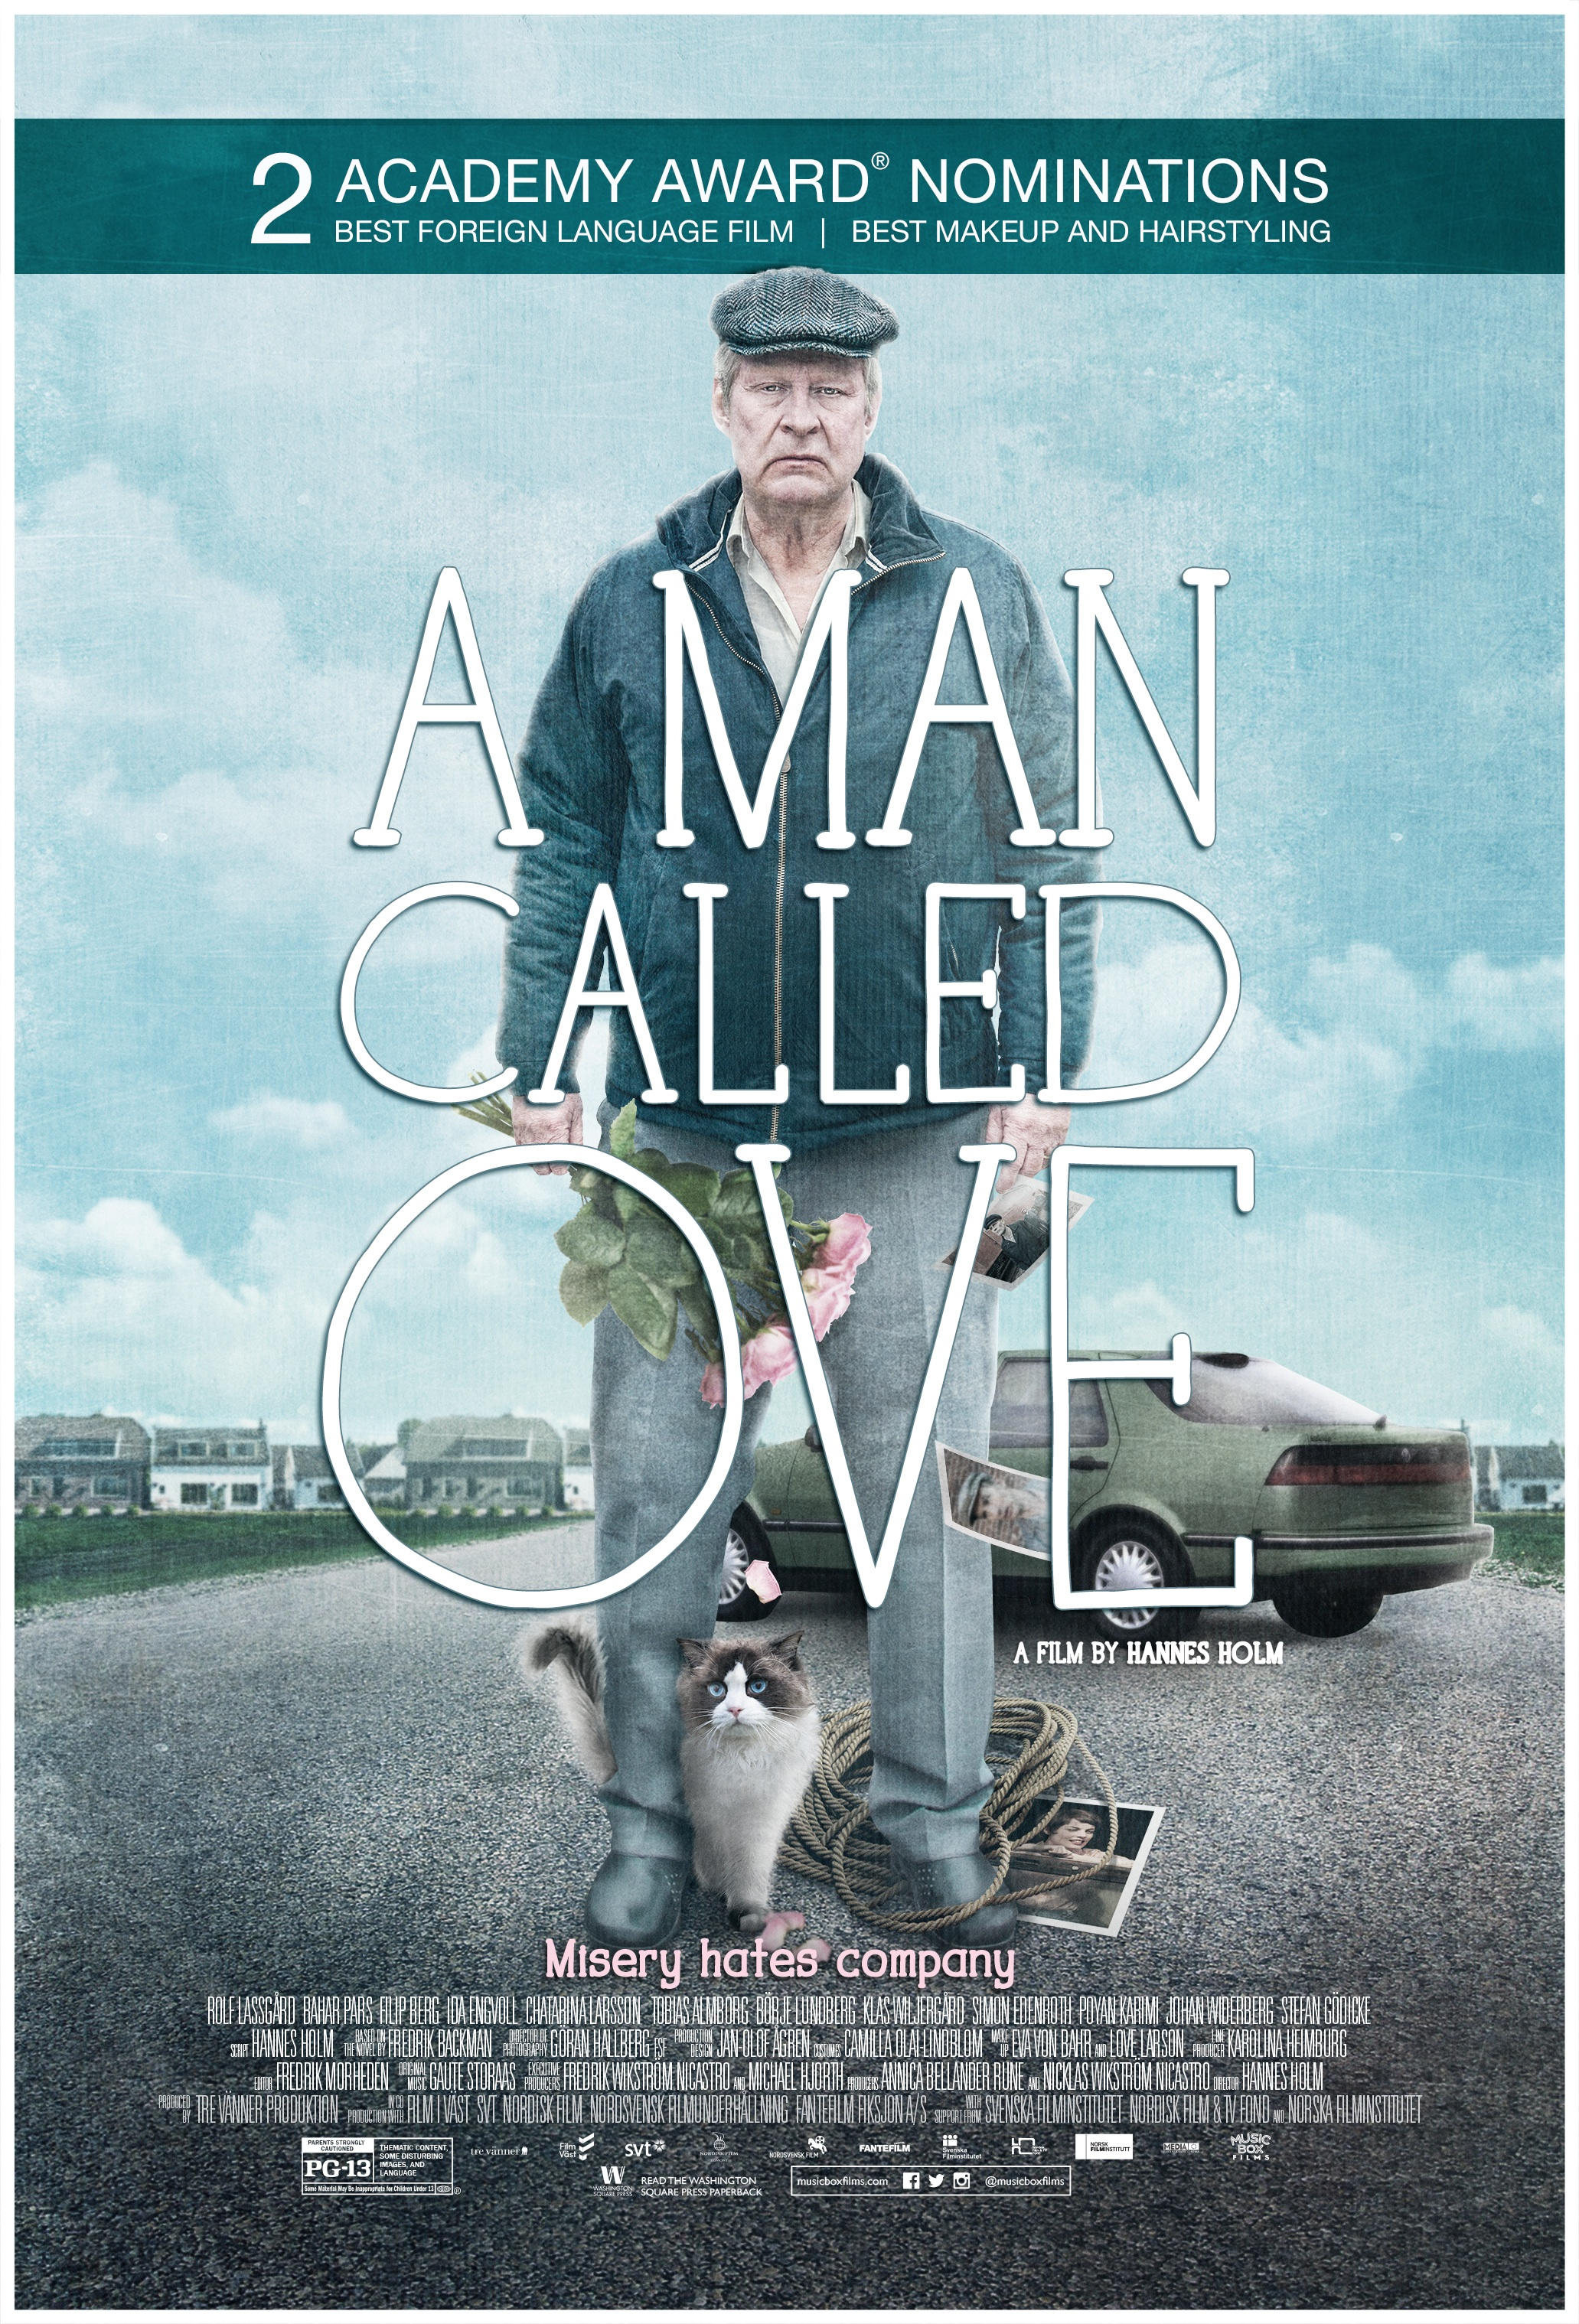 A Man Called Ove from A Man Called Ove [2015]